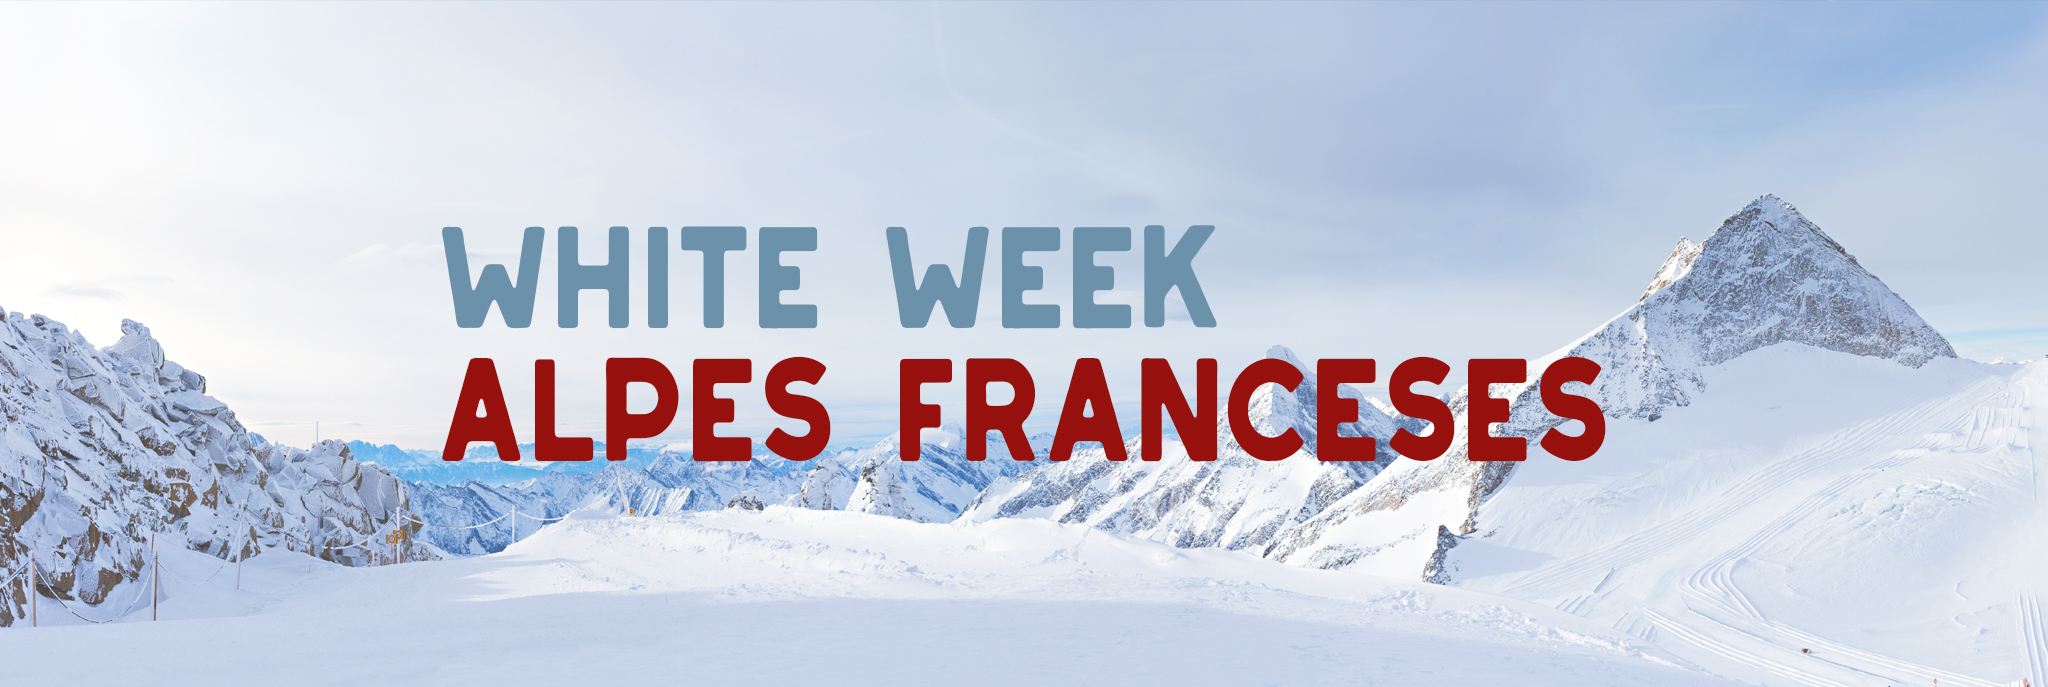 white-week-alpes-franceses